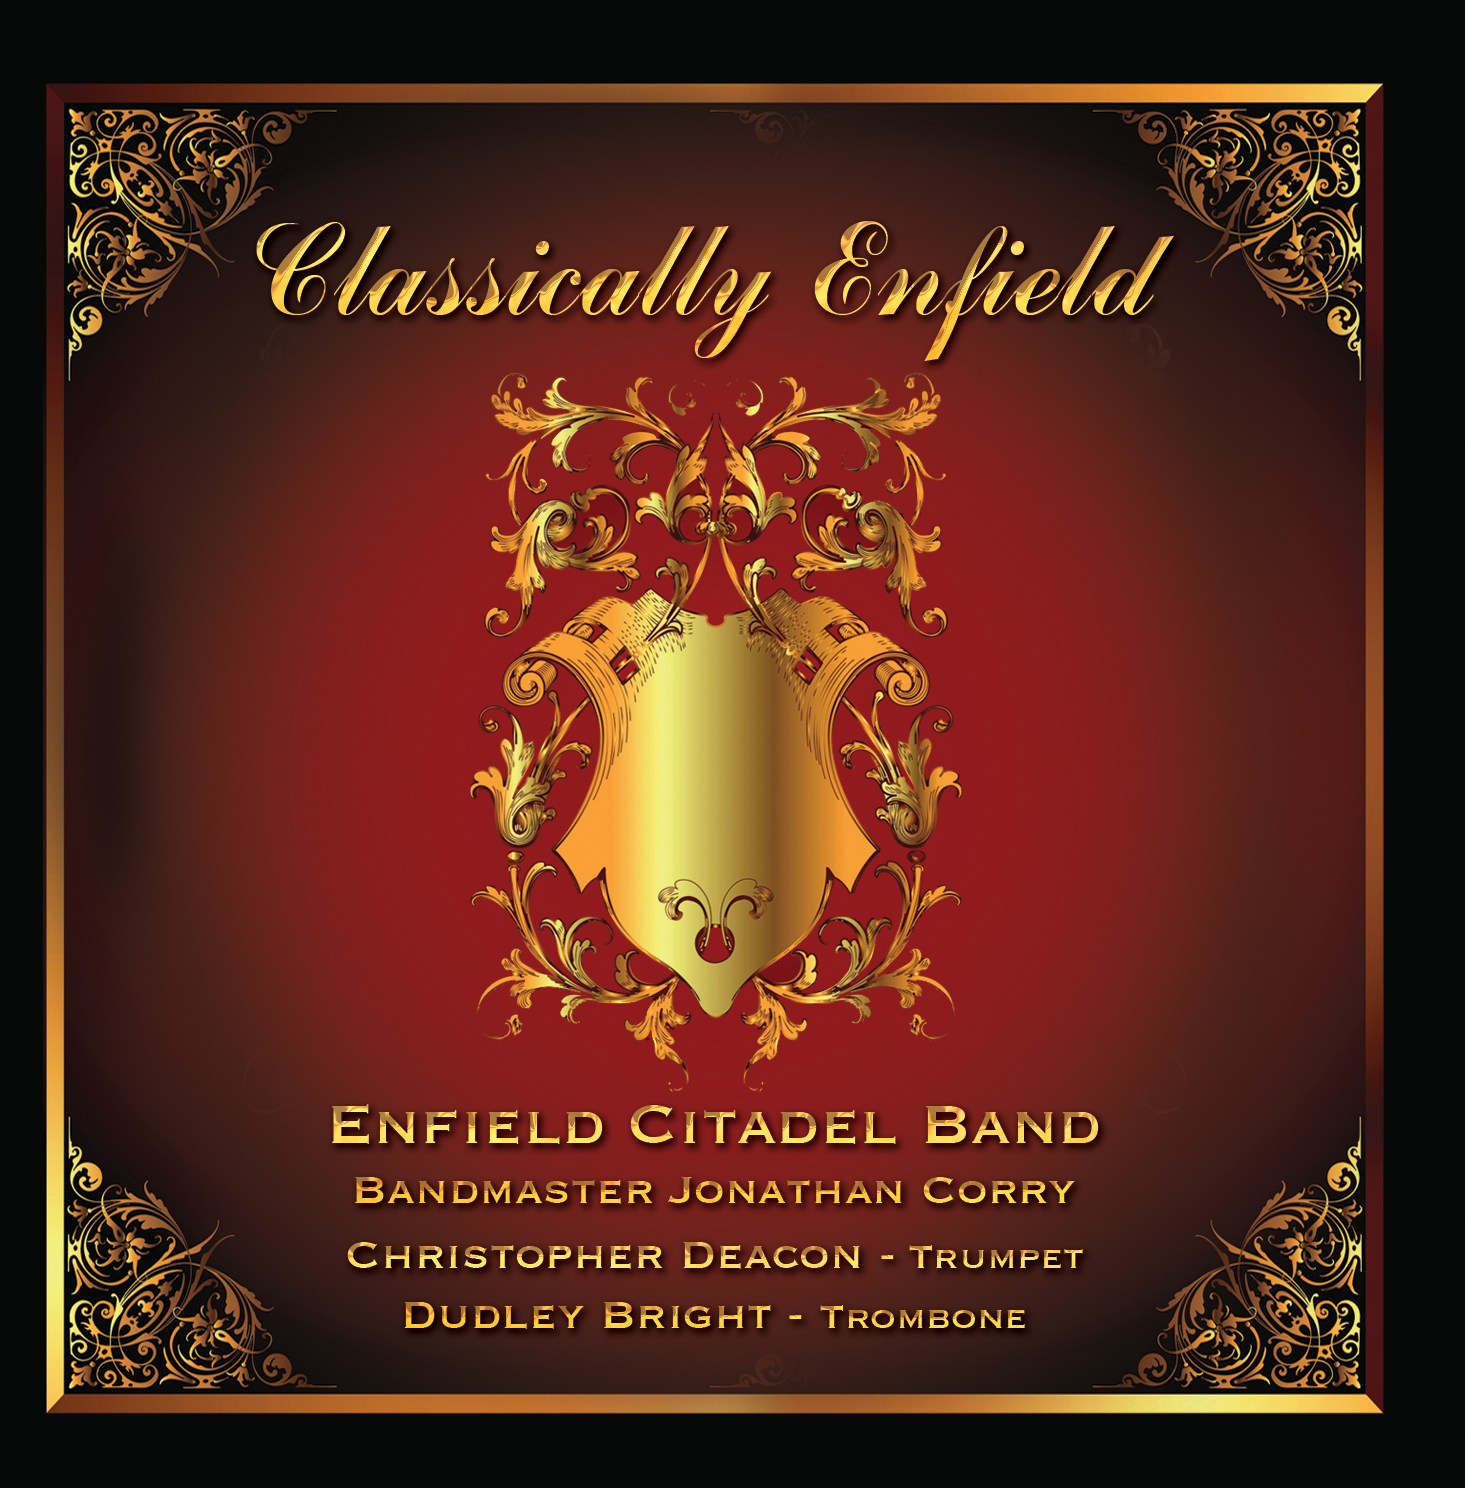 Classically Enfield - Download